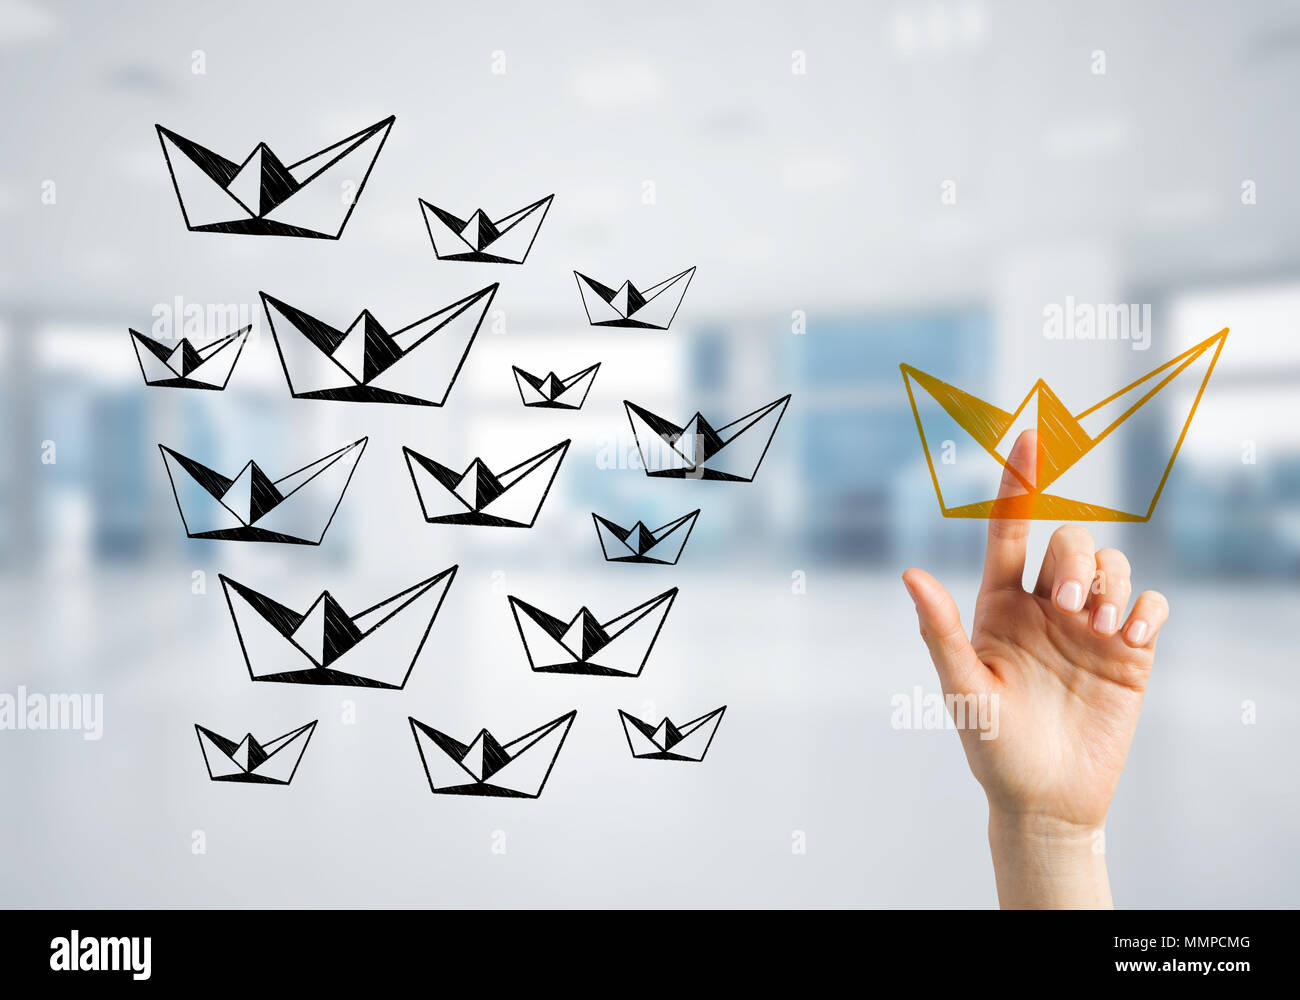 Concept of leadership and teamworking with many icons and one of them standing out - Stock Image